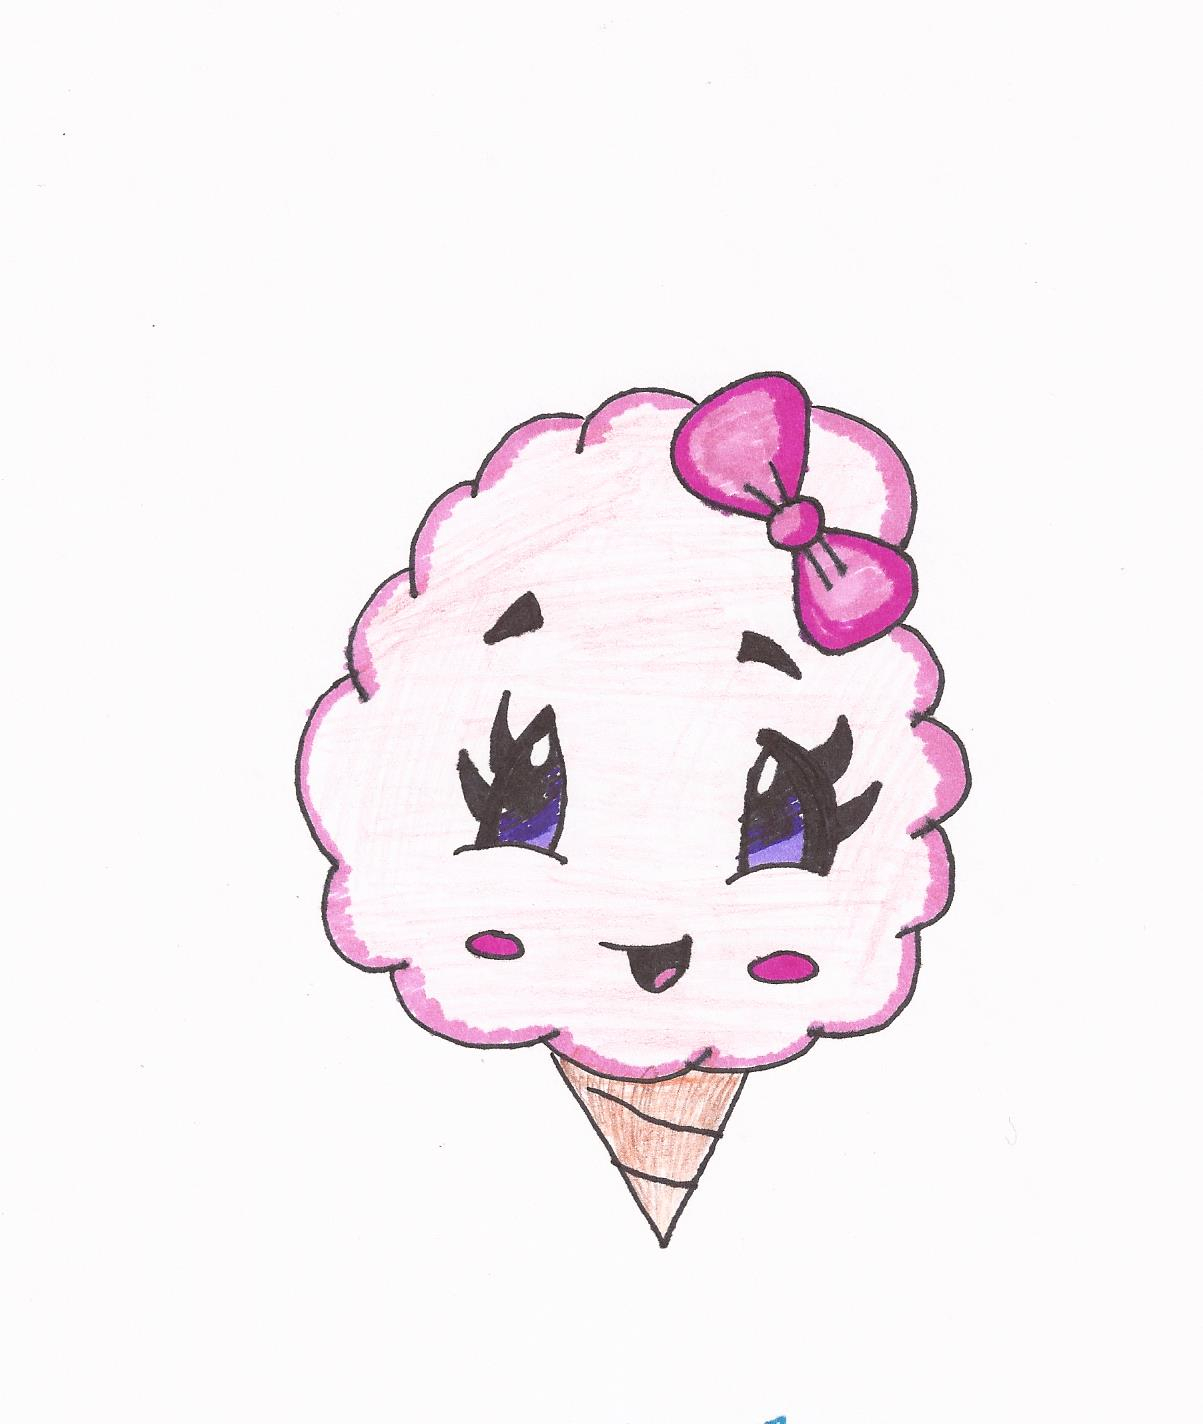 1203x1424 Cotton Candy Drawing Cartoon Cotton Candy Drawing